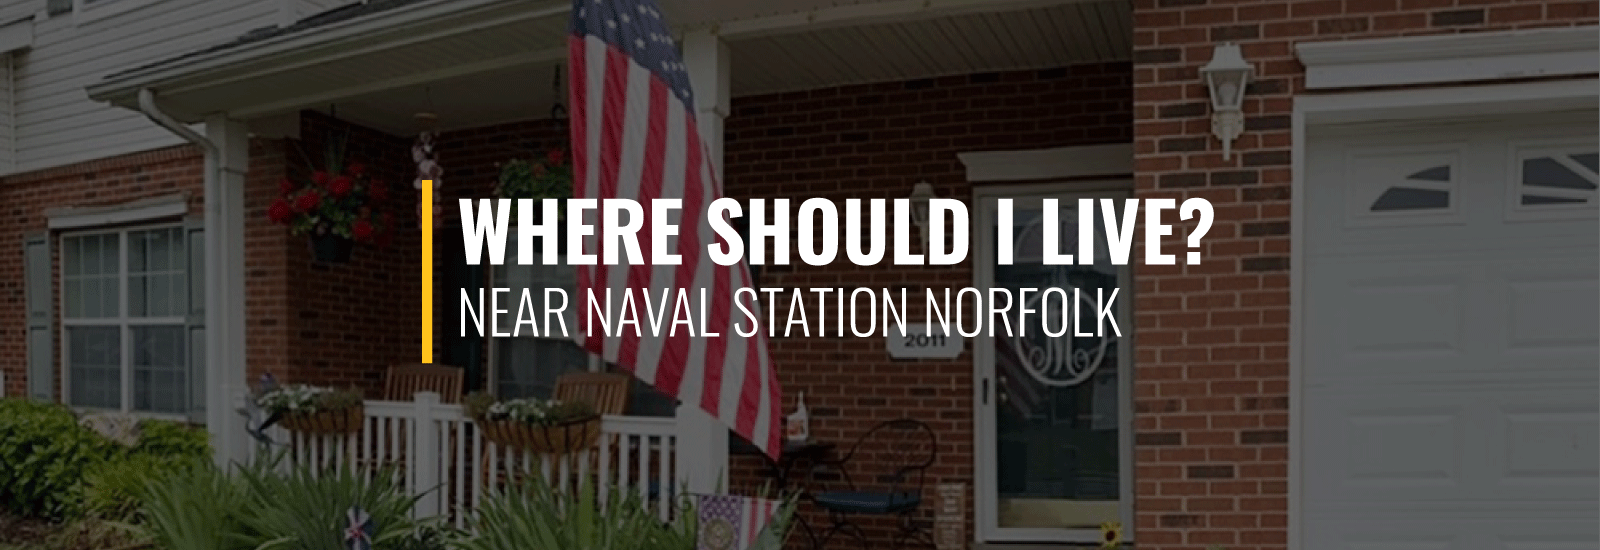 Where Should I Live Near Naval Station Norfolk?